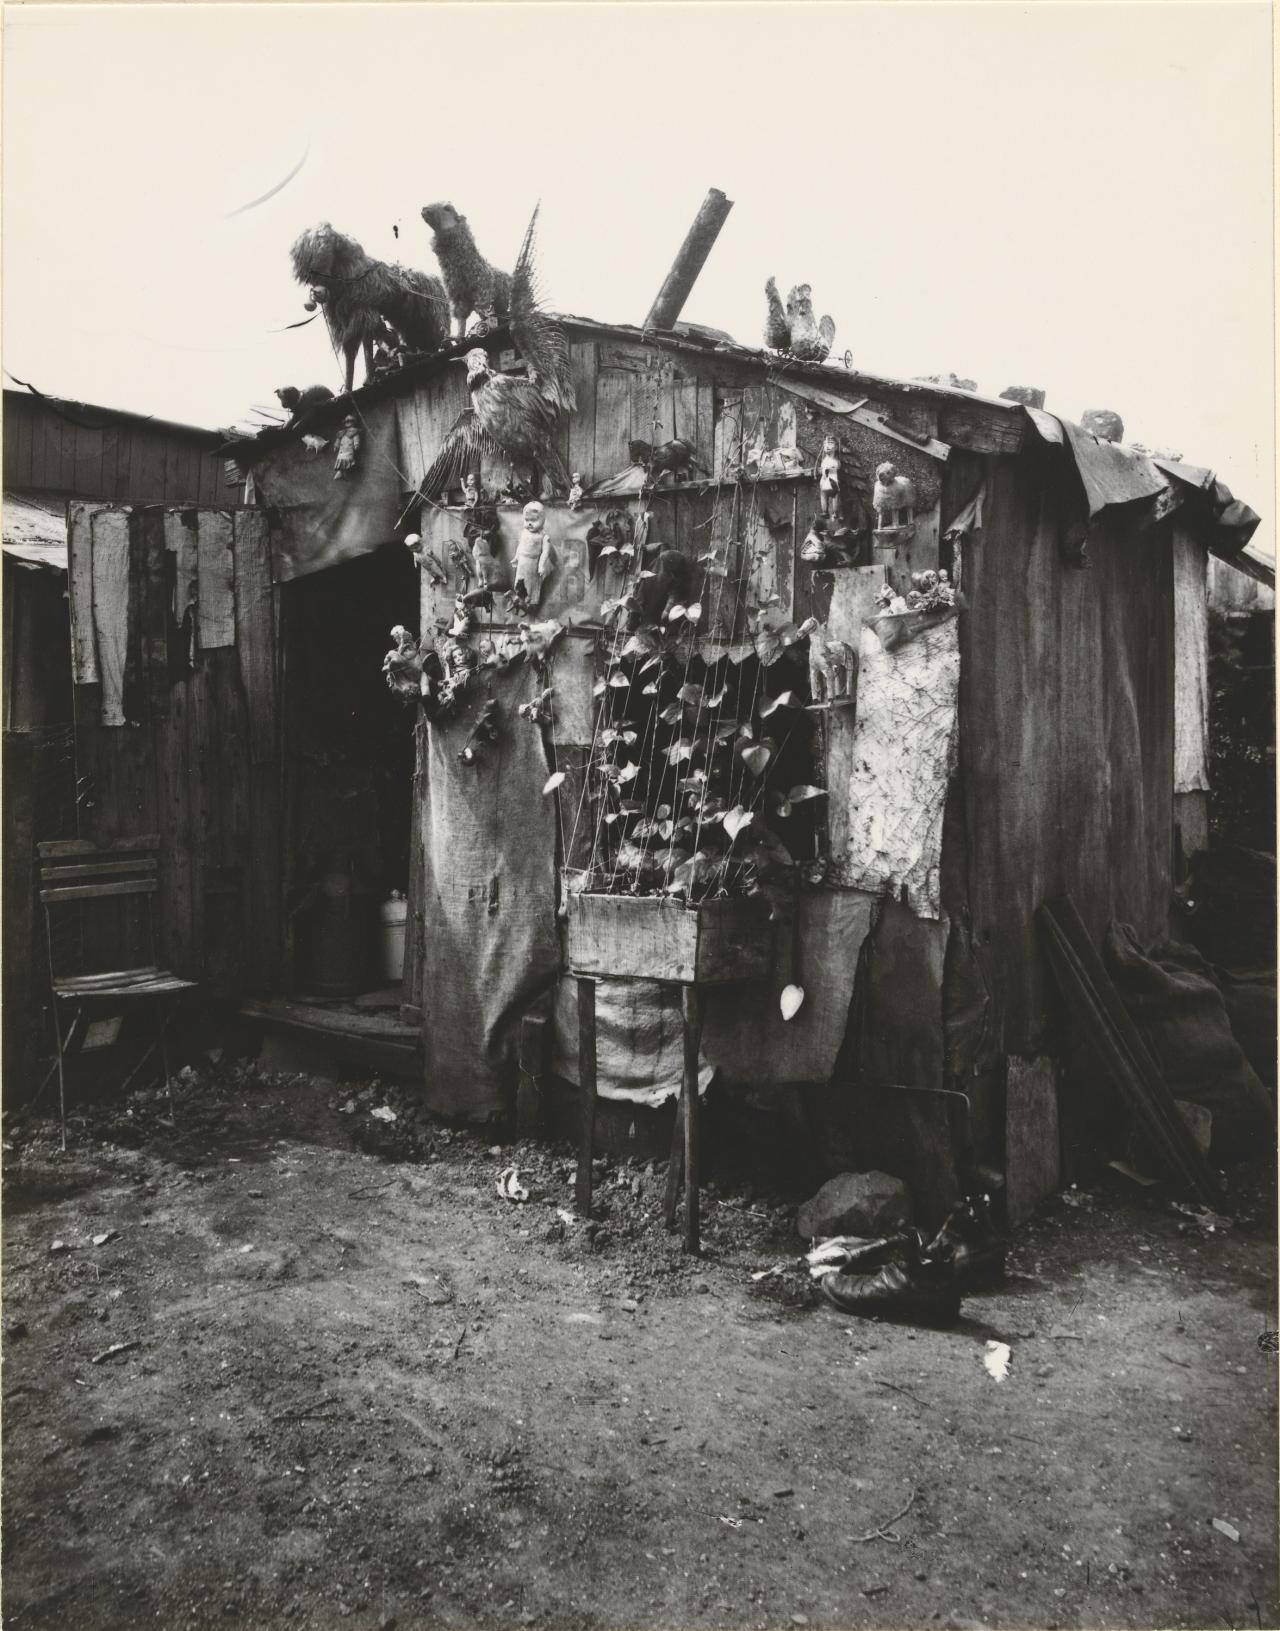 Ragpicker's Hut